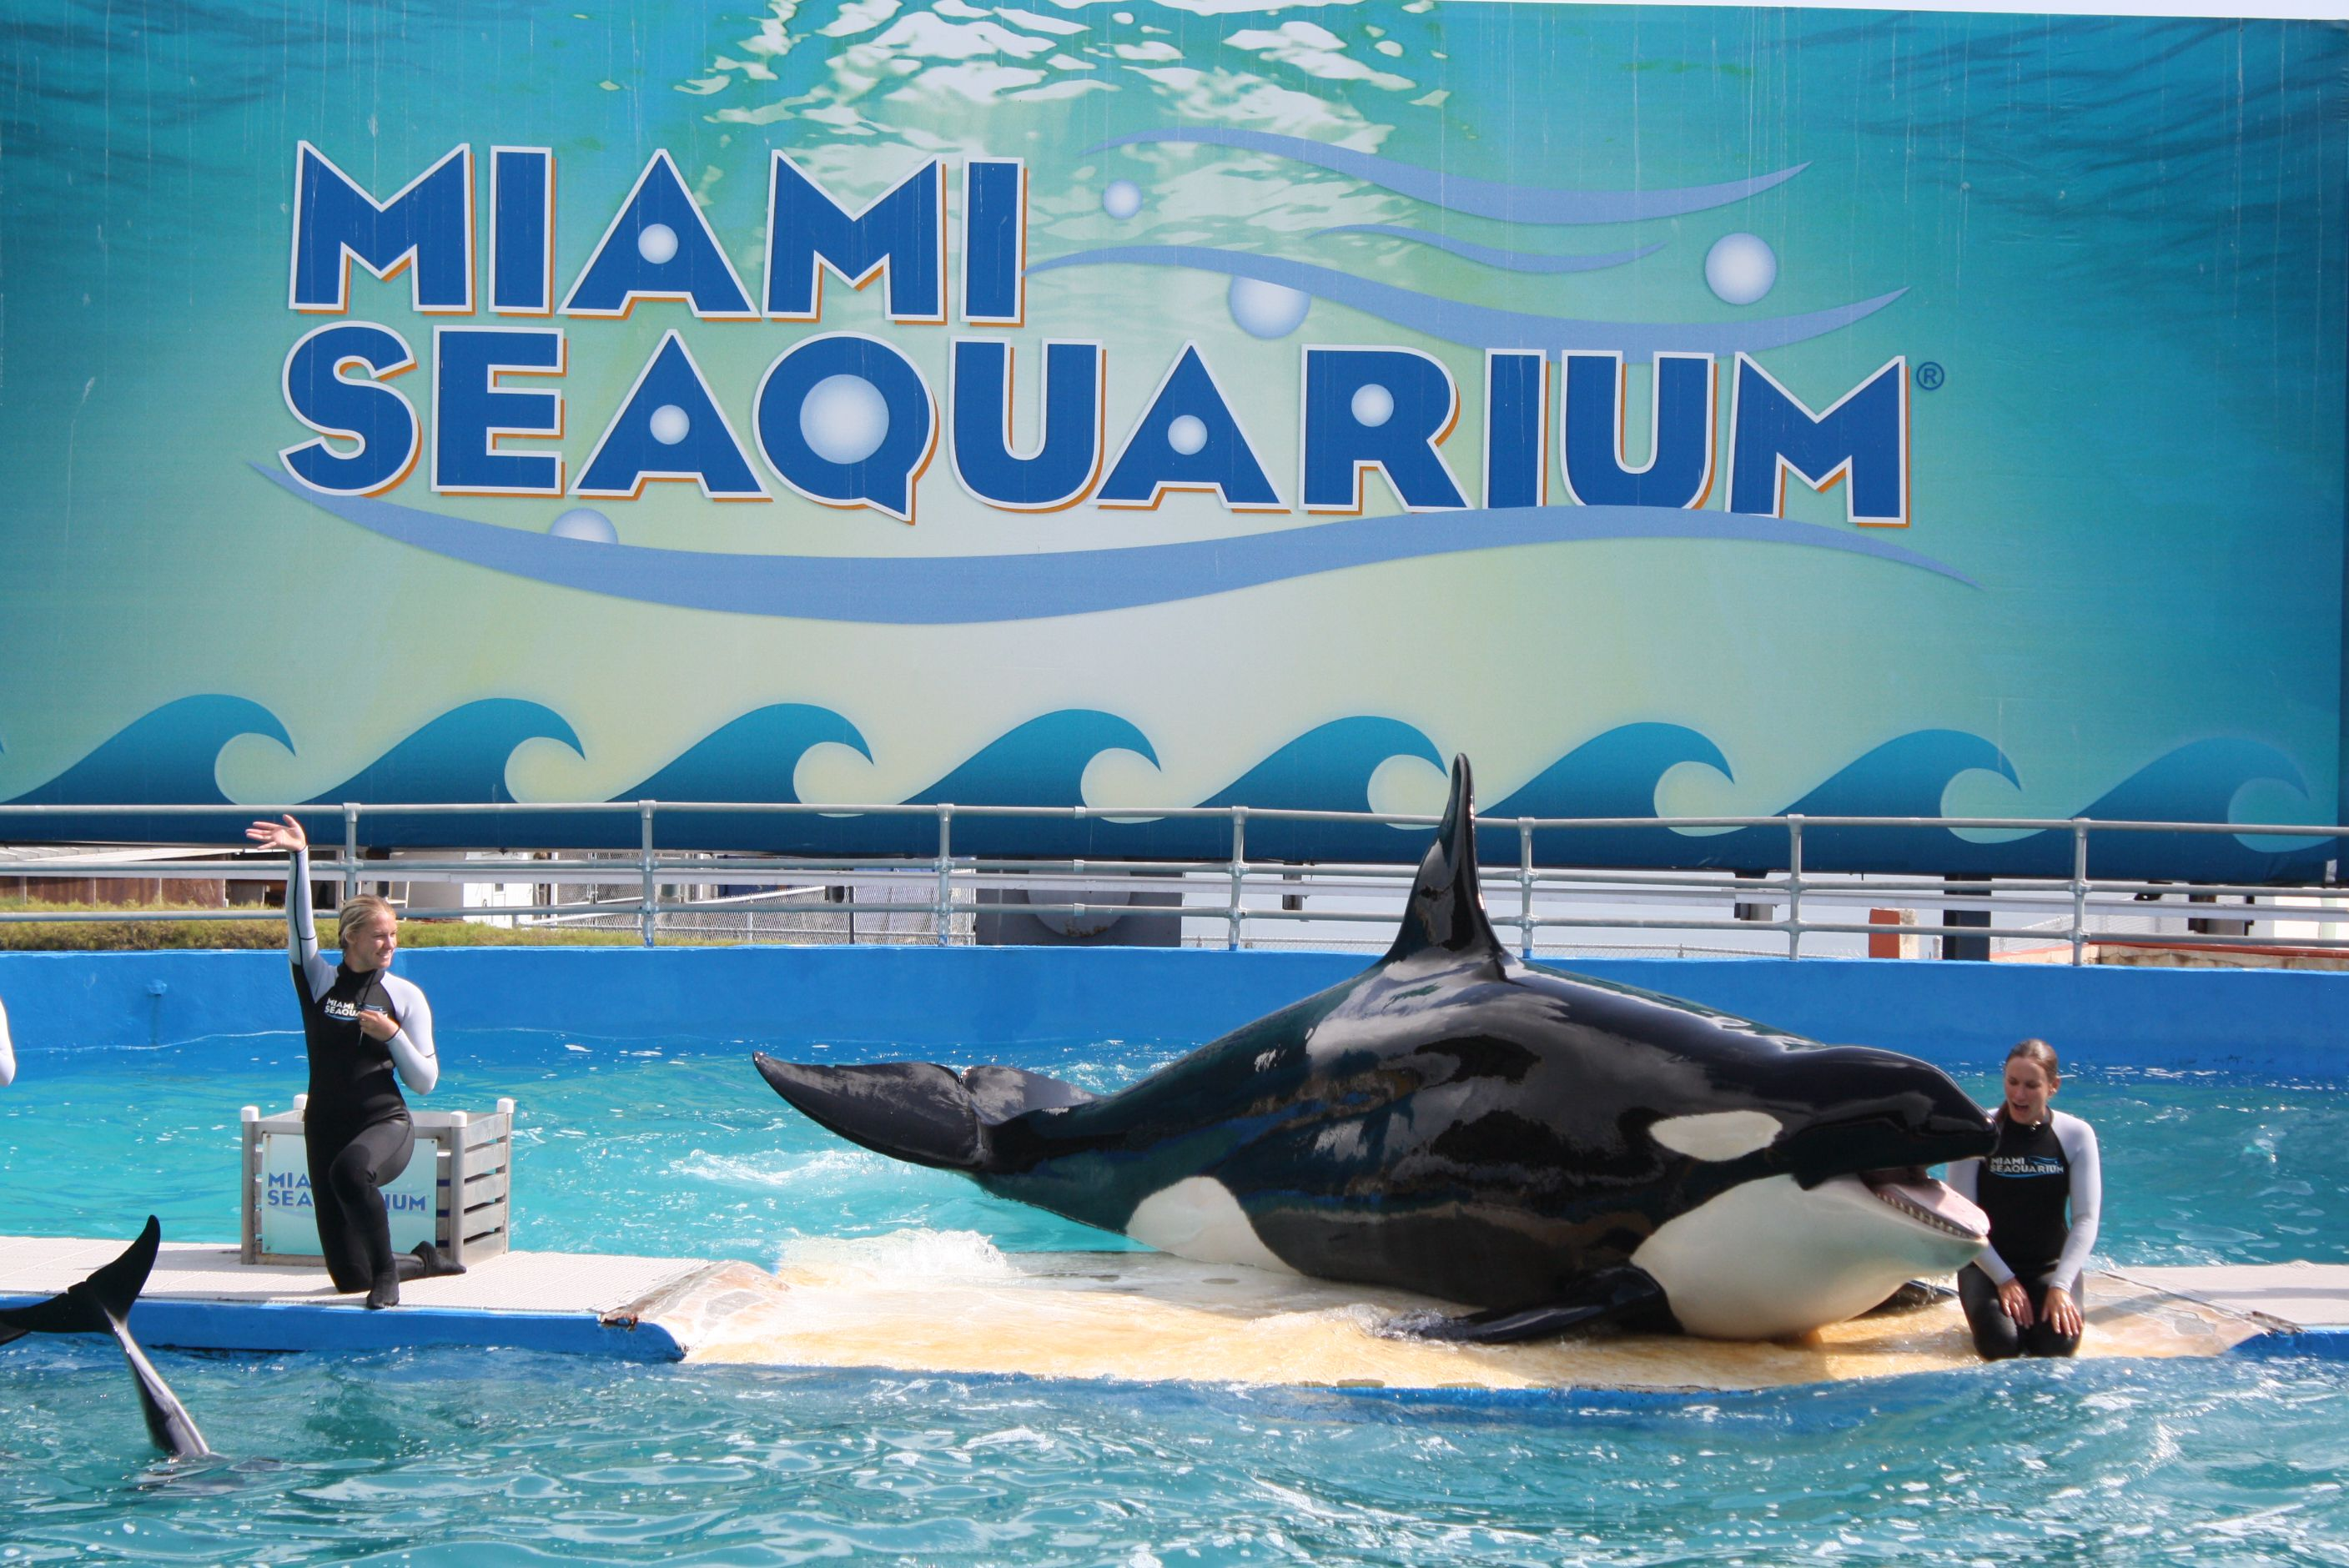 Miami Seaquarium Visitor Information And Review